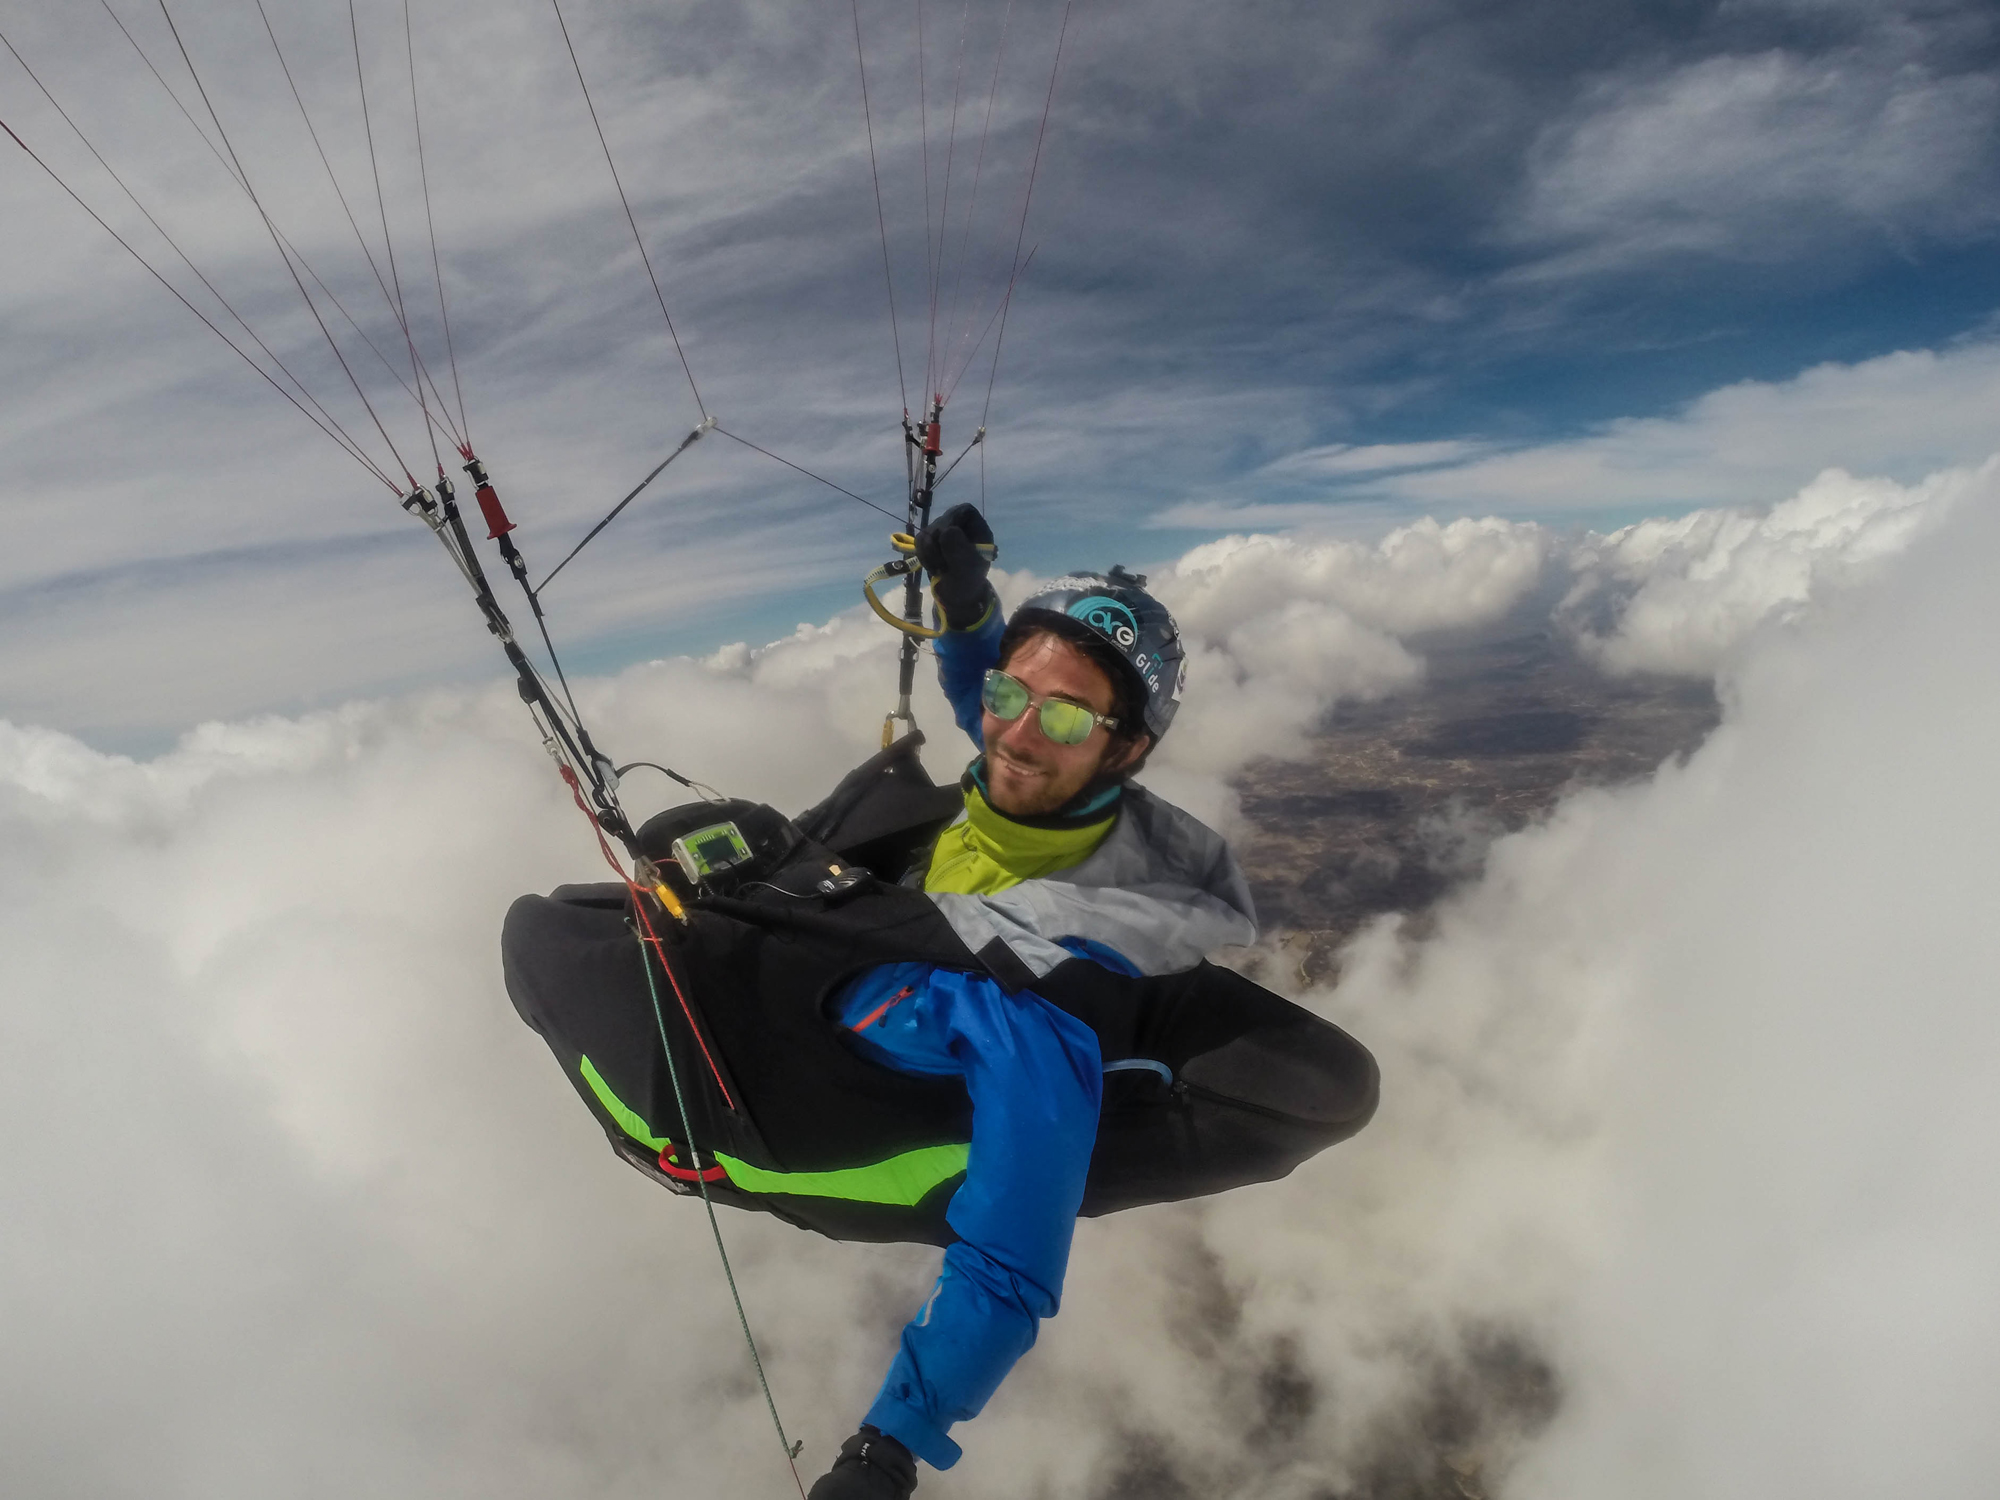 Brazil quixada expe parapente above the clouds Francois Ragolski